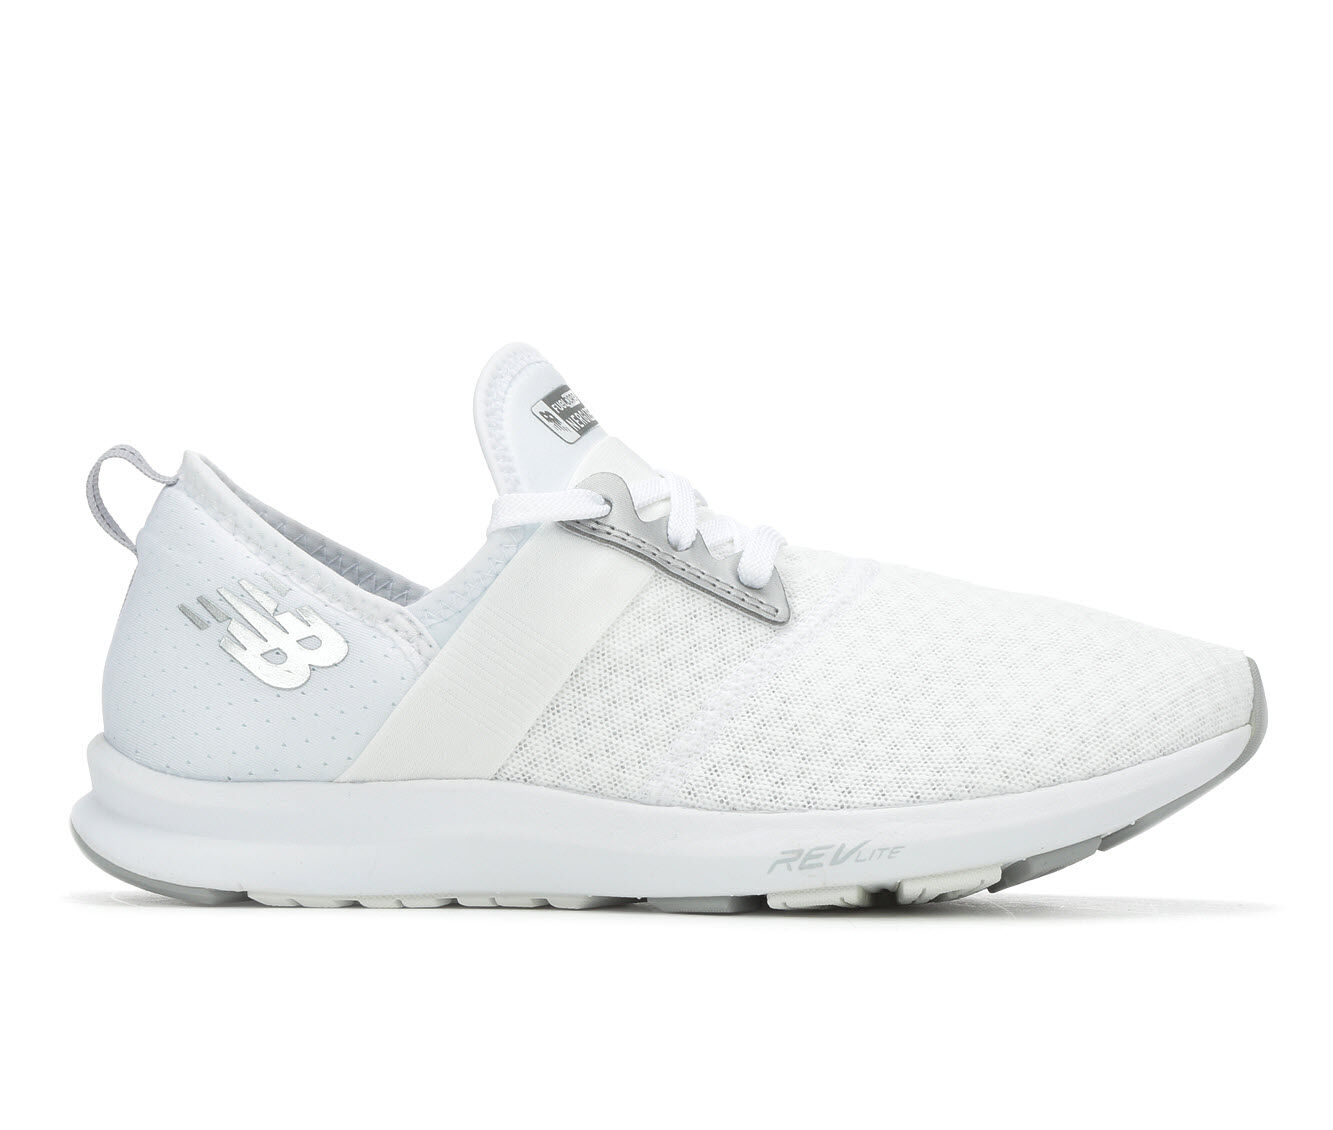 Lowest Price Women's New Balance FuelCore Nergize Sneakers White/White